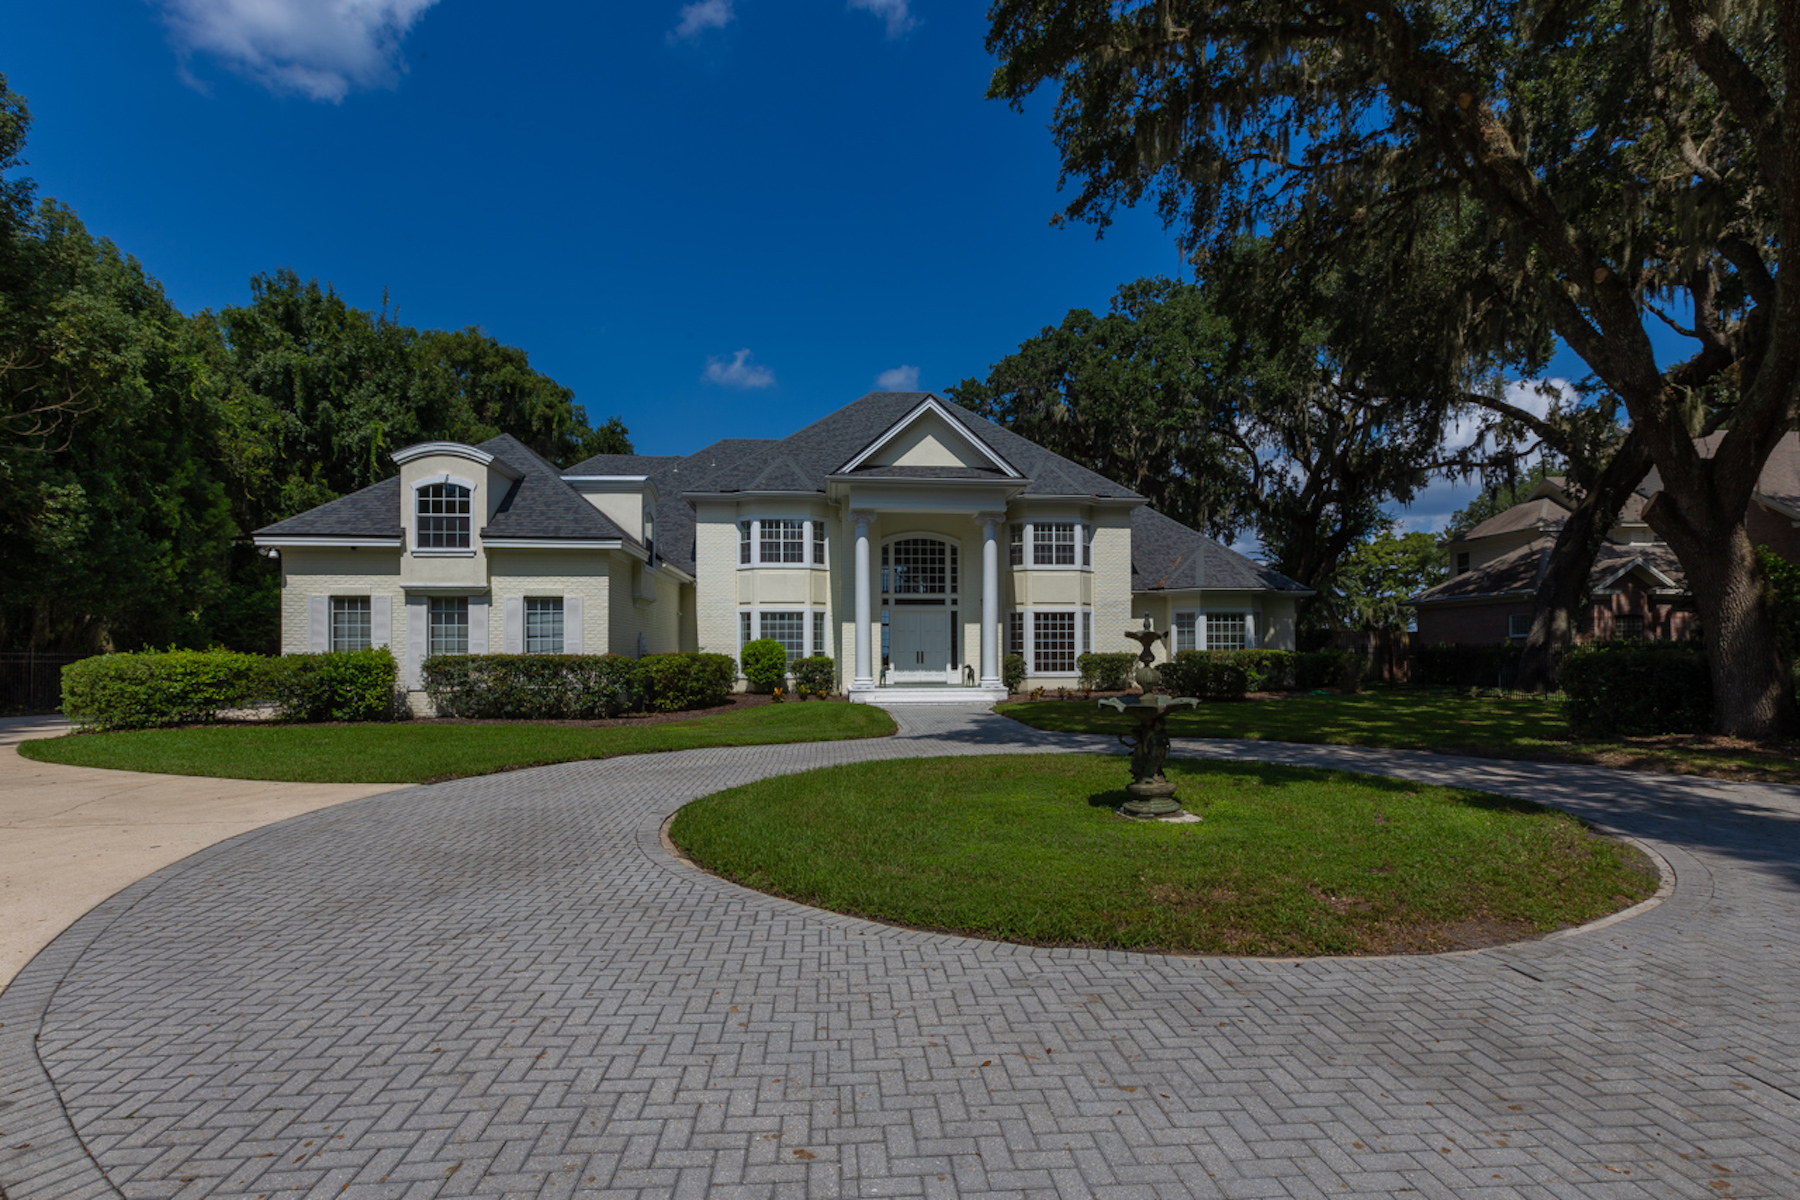 Single Family Homes for Active at Road to River Estate 12626 Mandarin Road Jacksonville, Florida 32223 United States